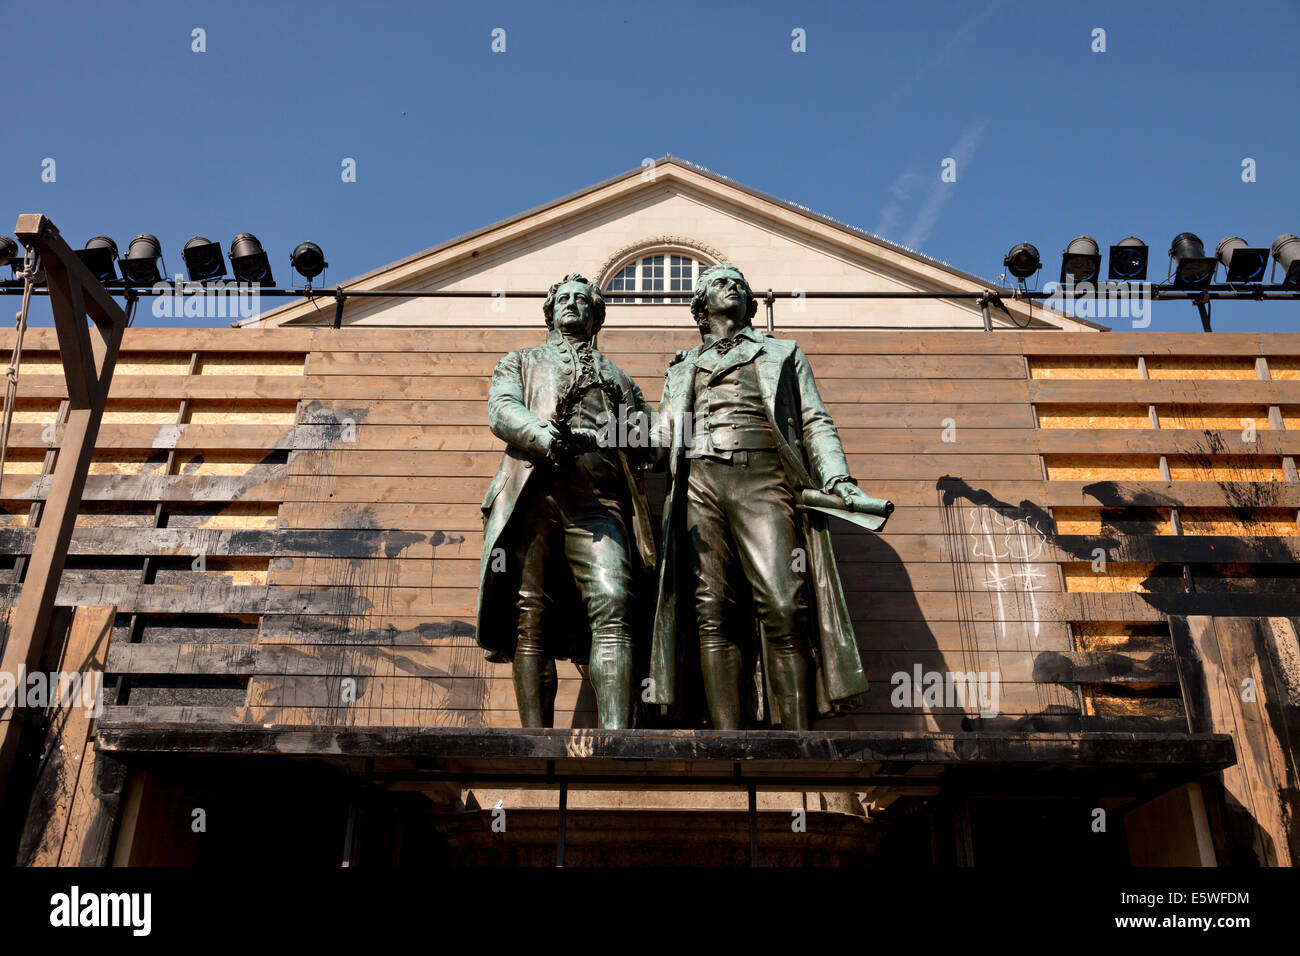 The Goethe-Schiller Monument as part of a theater Scenic design and the Deutsches Nationaltheater in Weimar, Thuringia, - Stock Image